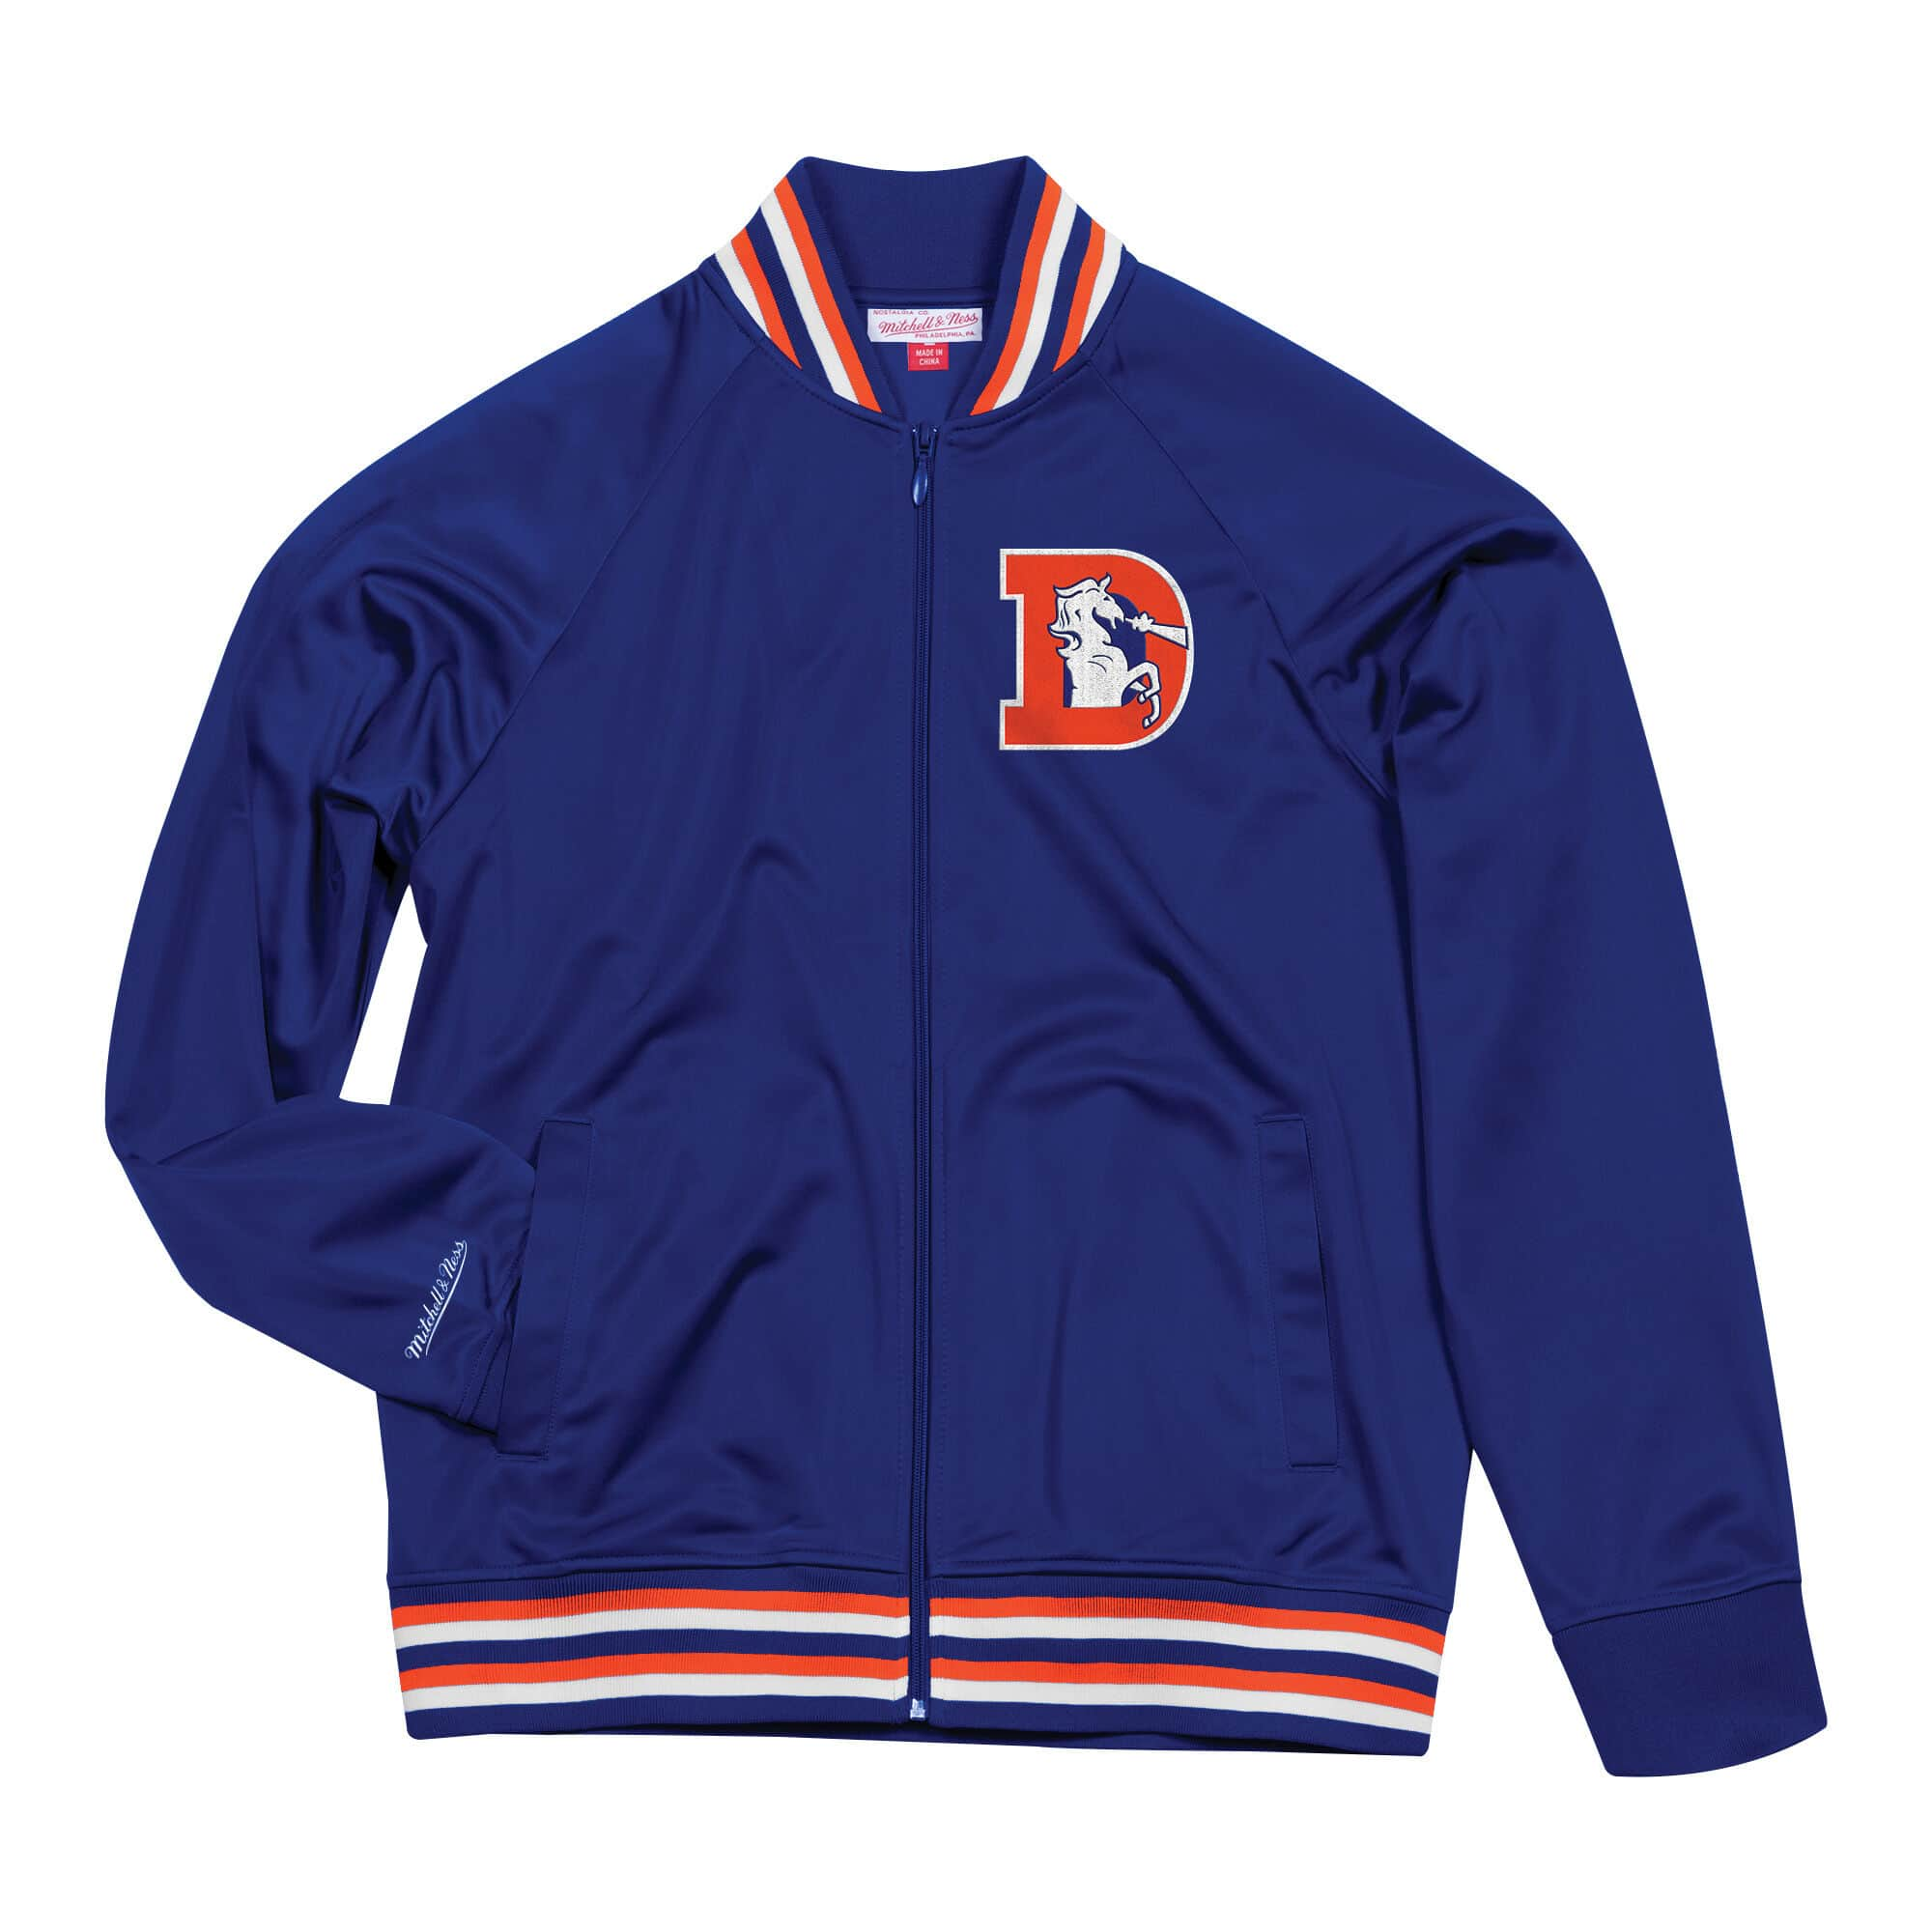 Top Prospect Track Jacket Denver Broncos